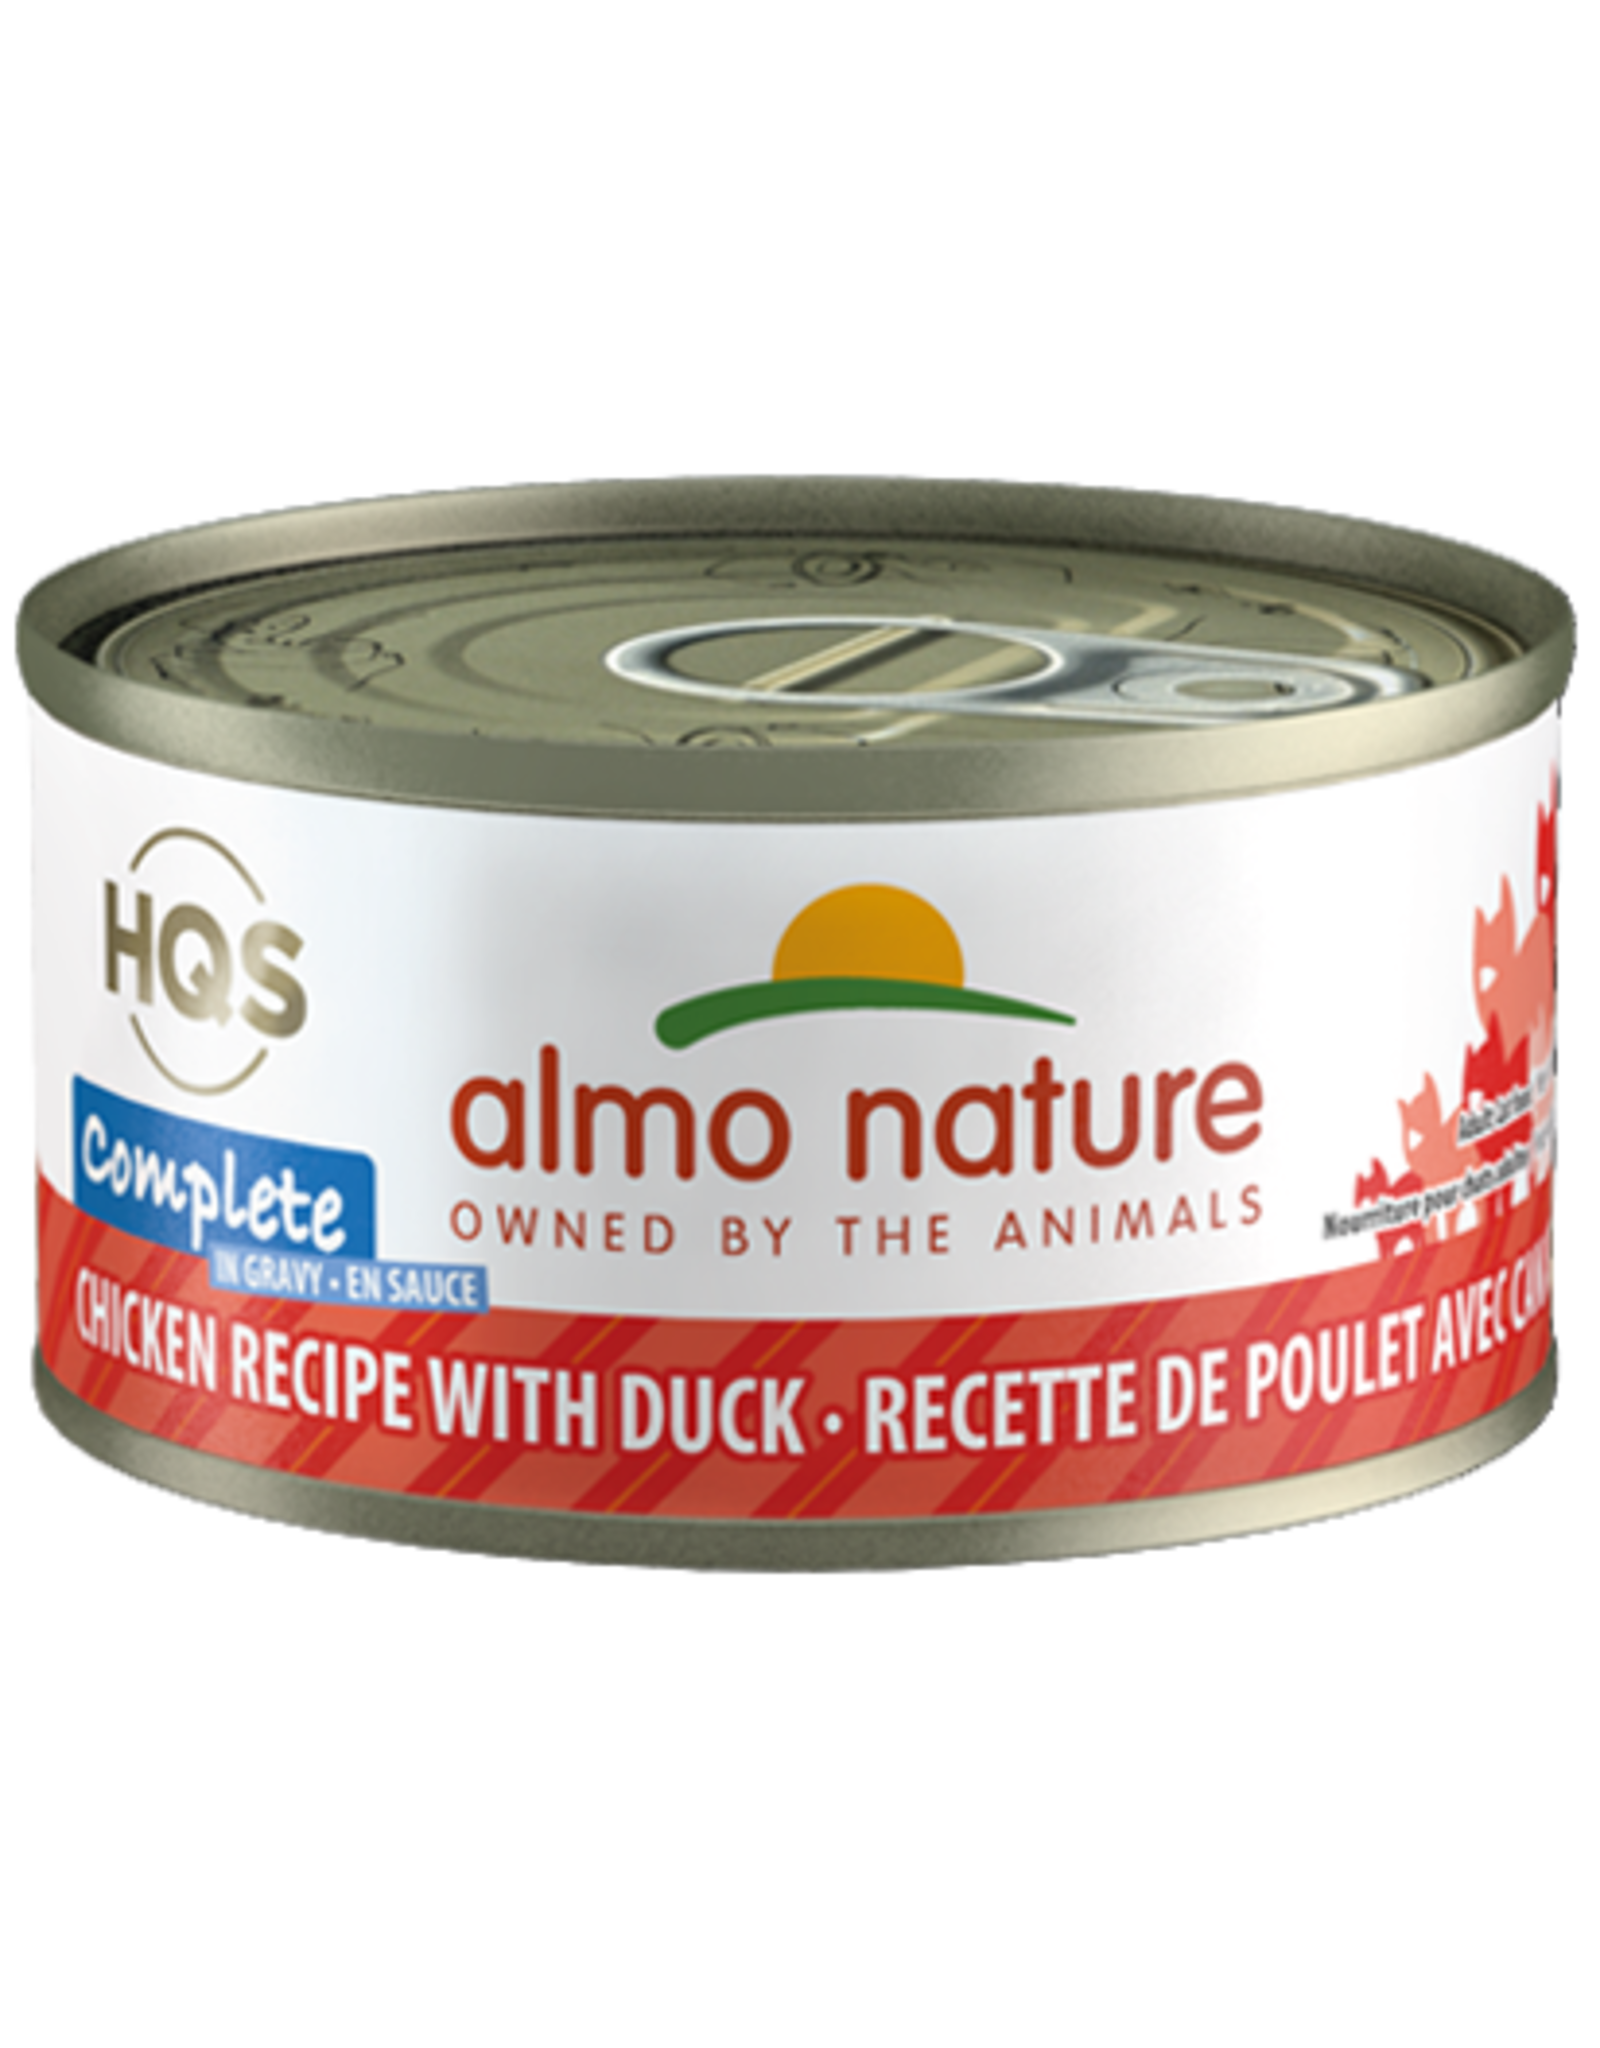 Almo Nature Almo Cat - HQS Complete Chicken/Duck 70g